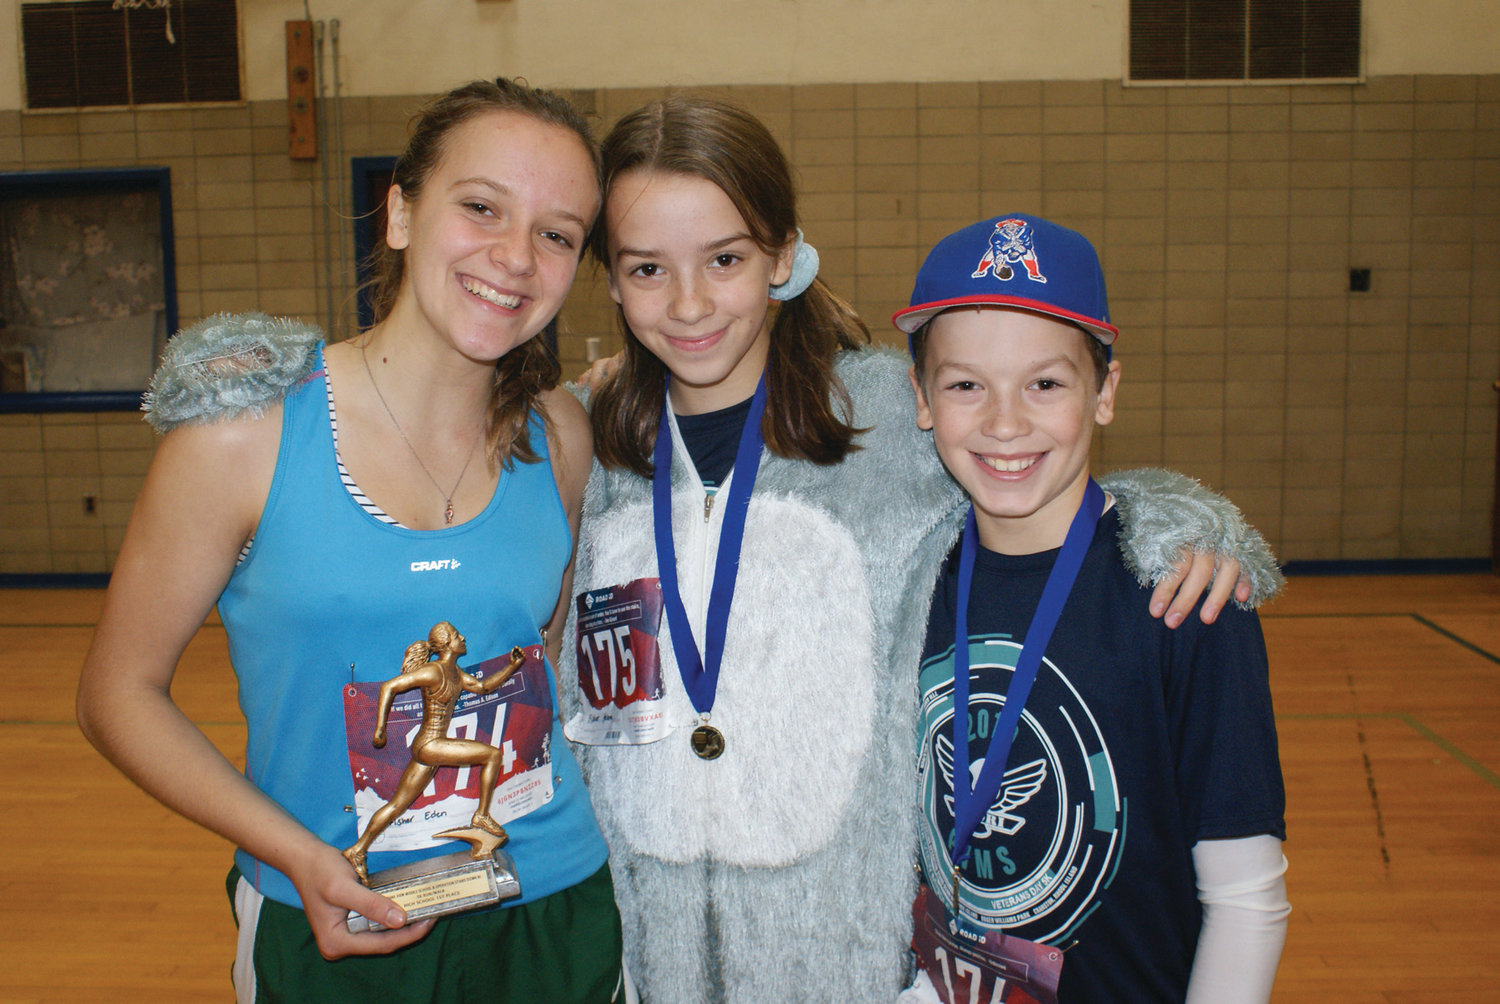 WINNING SMILE: Eden Fisher, a senior at Cranston High School East, won first place in girls high school category with a time of 21 minutes, 32 seconds. She celebrated with siblings Helena and Harrison.